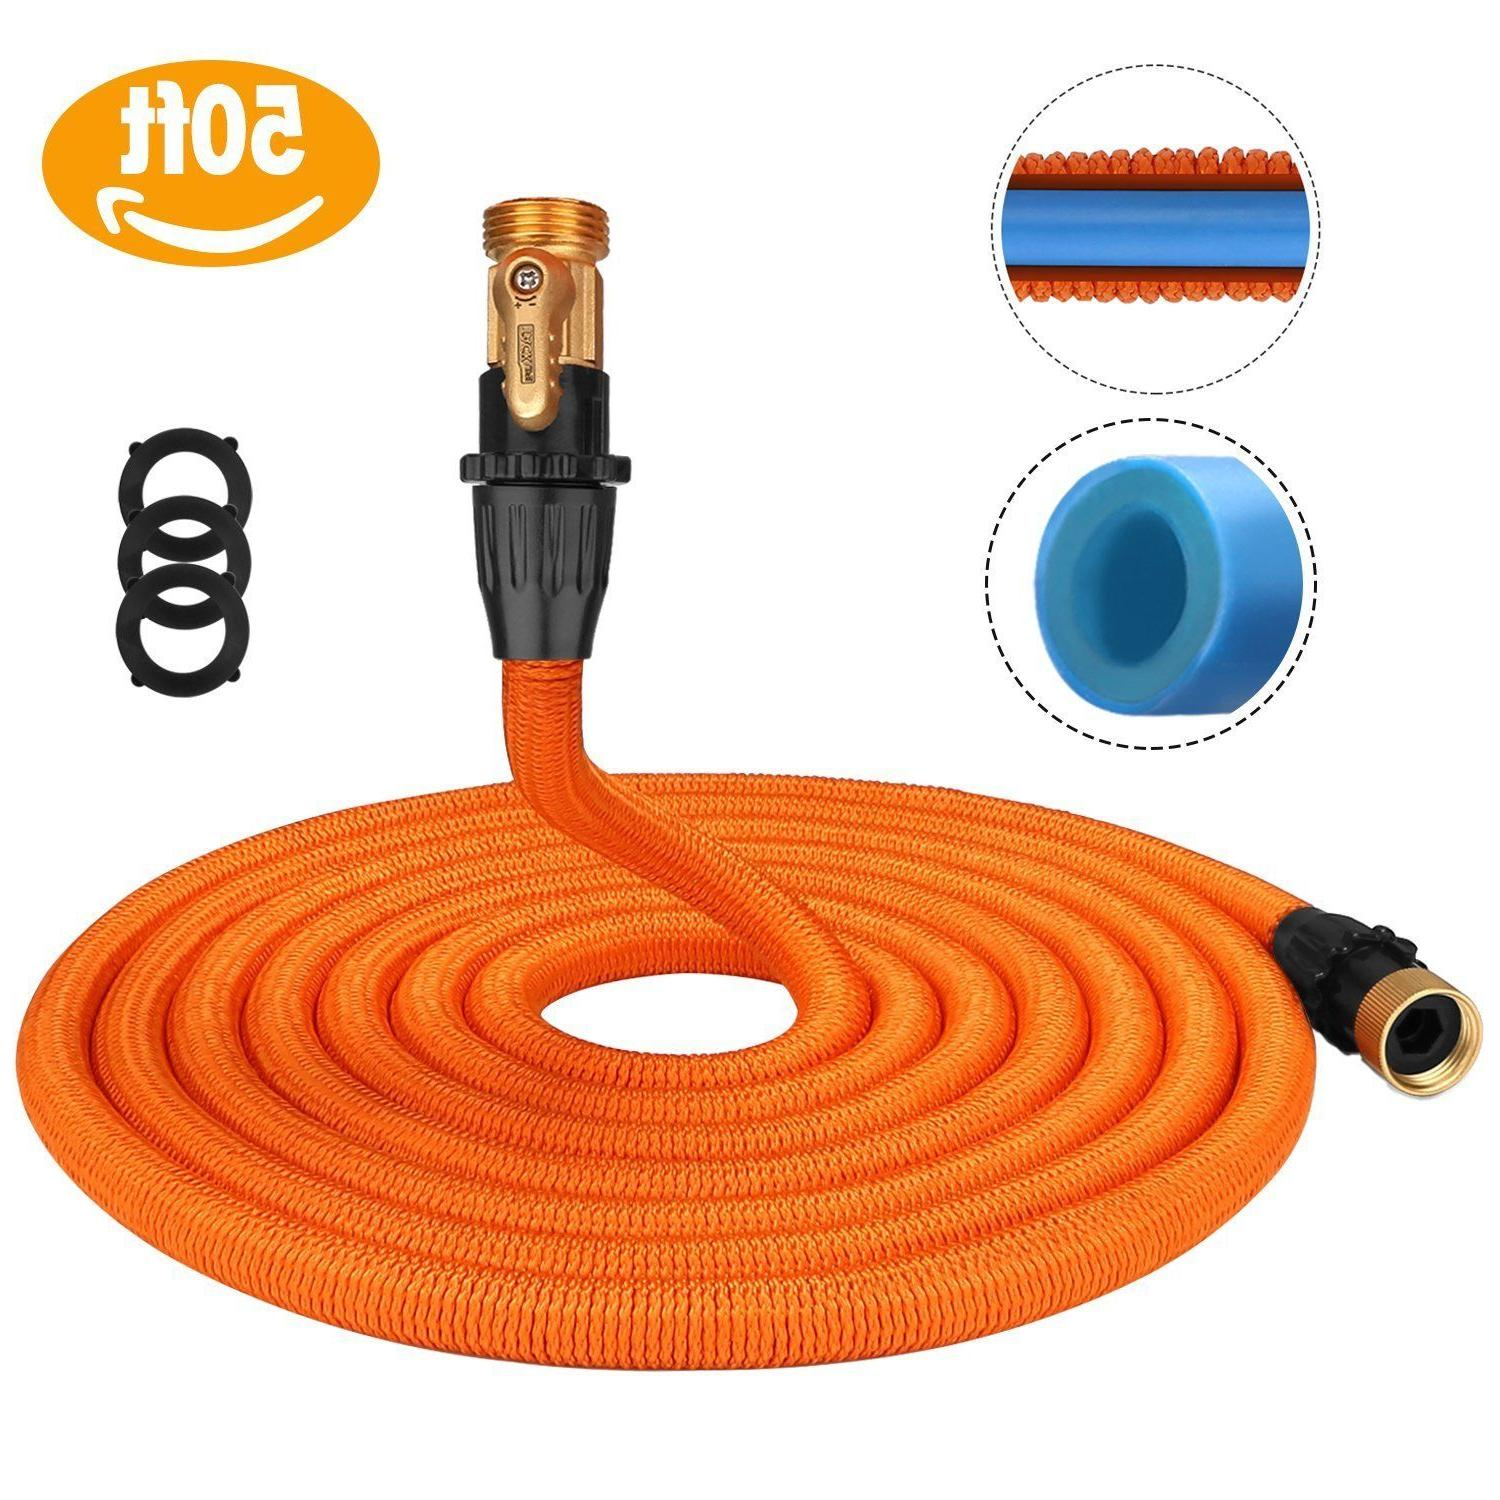 Tacklife 50ft Garden Hose, Innovative Leakproof Patent Conne